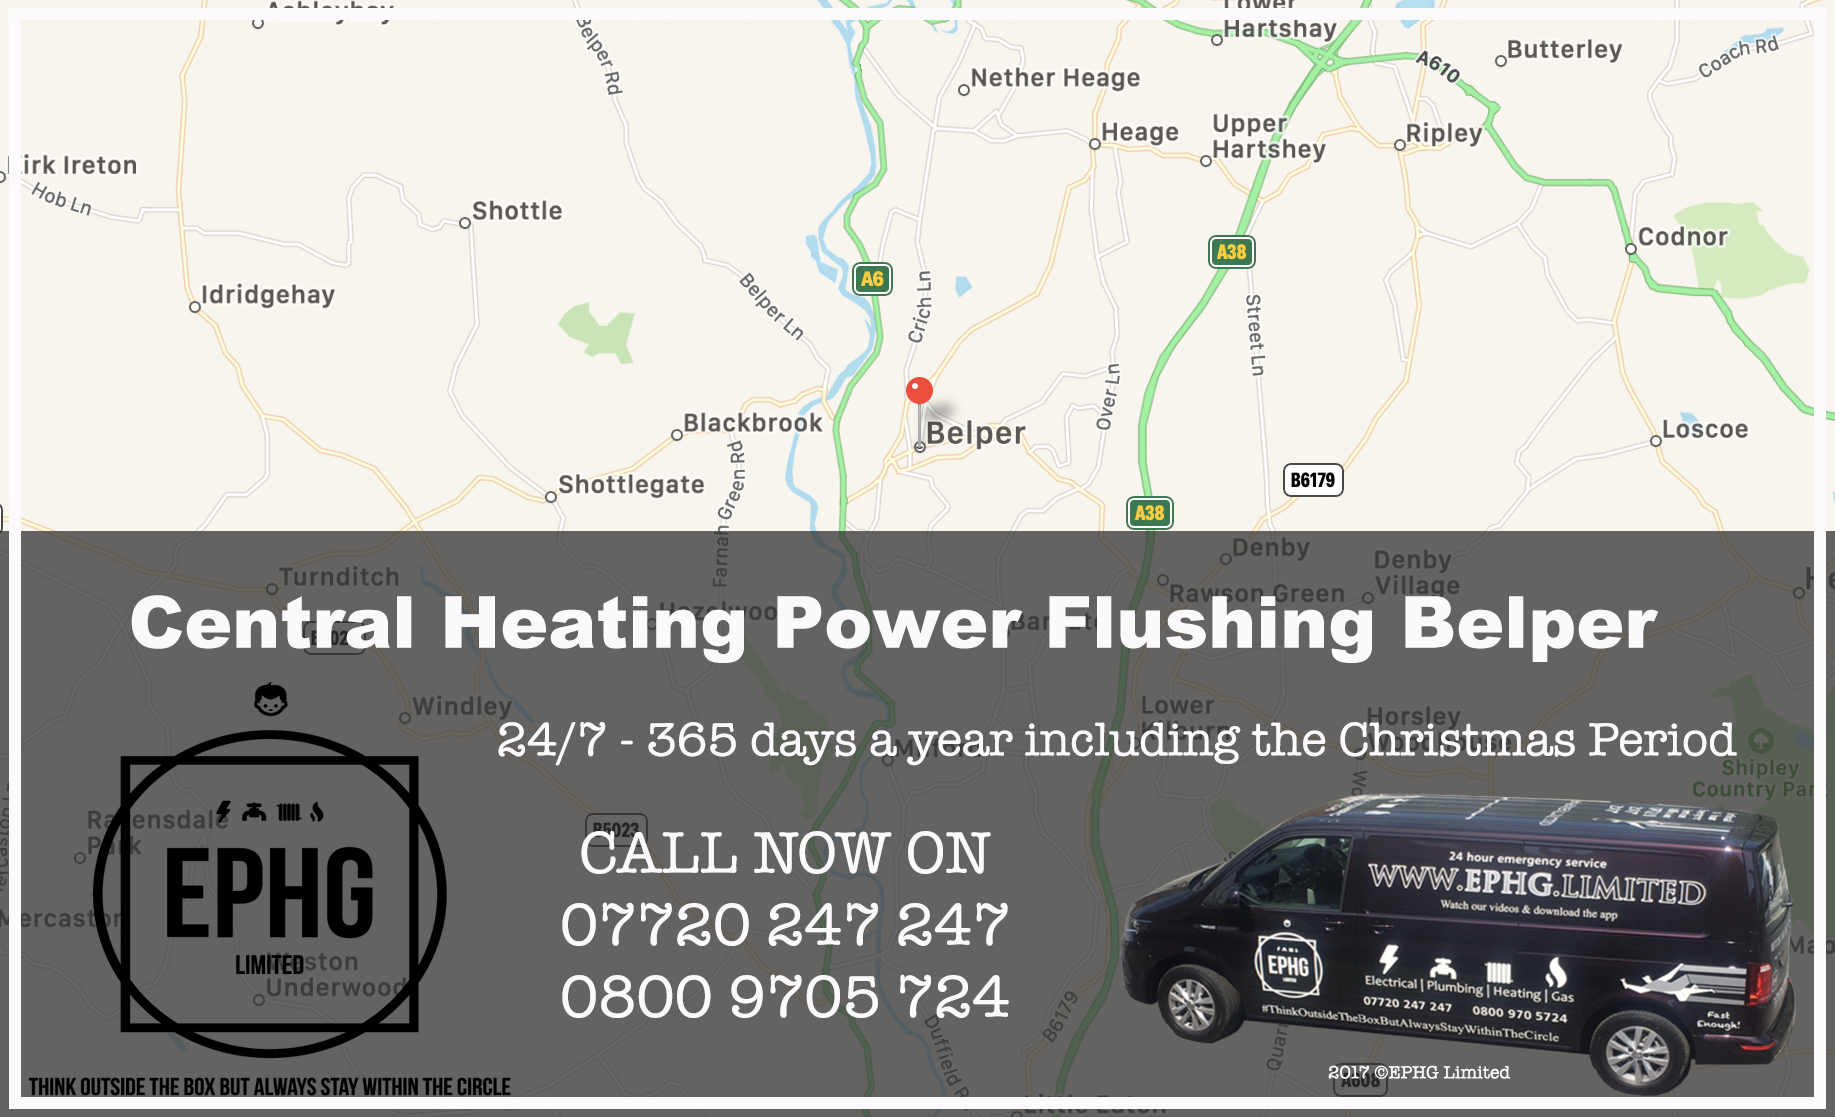 Central Heating Power Flush Belper